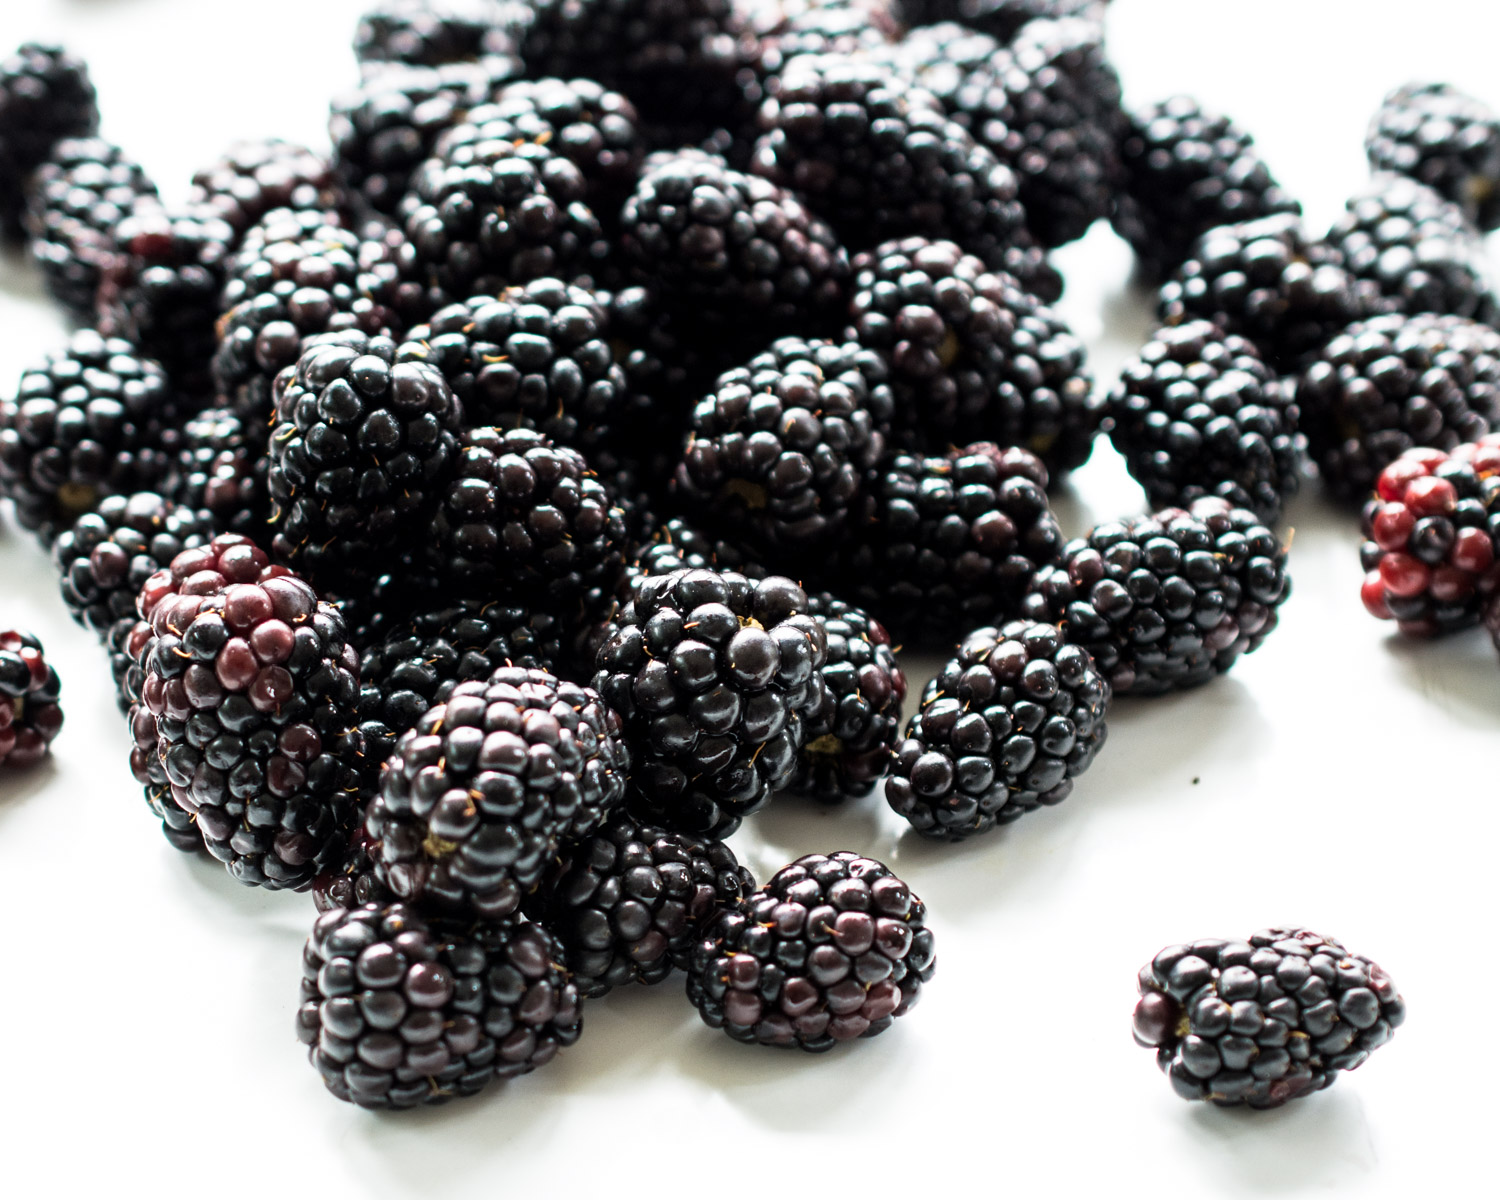 Fresh picked blackberries.